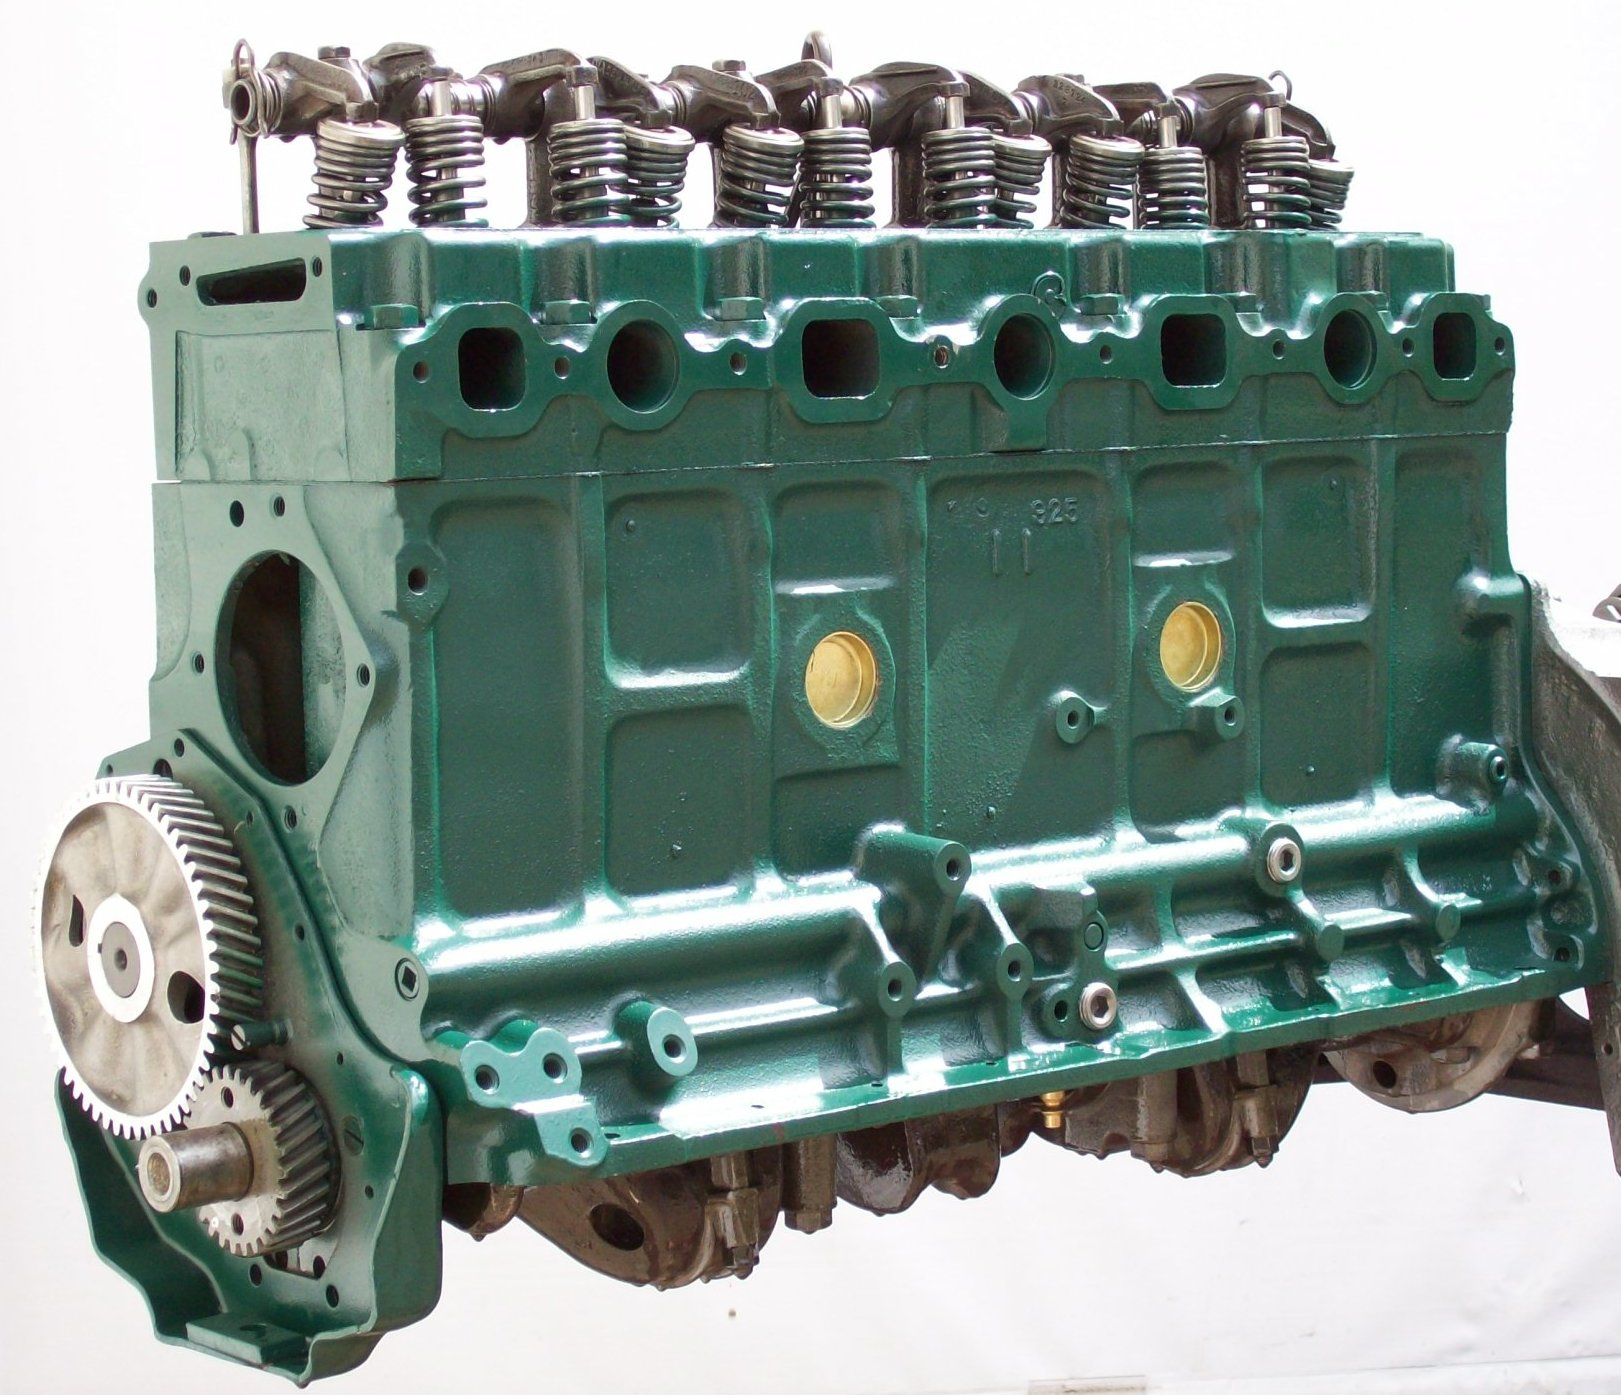 Chevrolet 6 Cylinder Remanufactured Engines